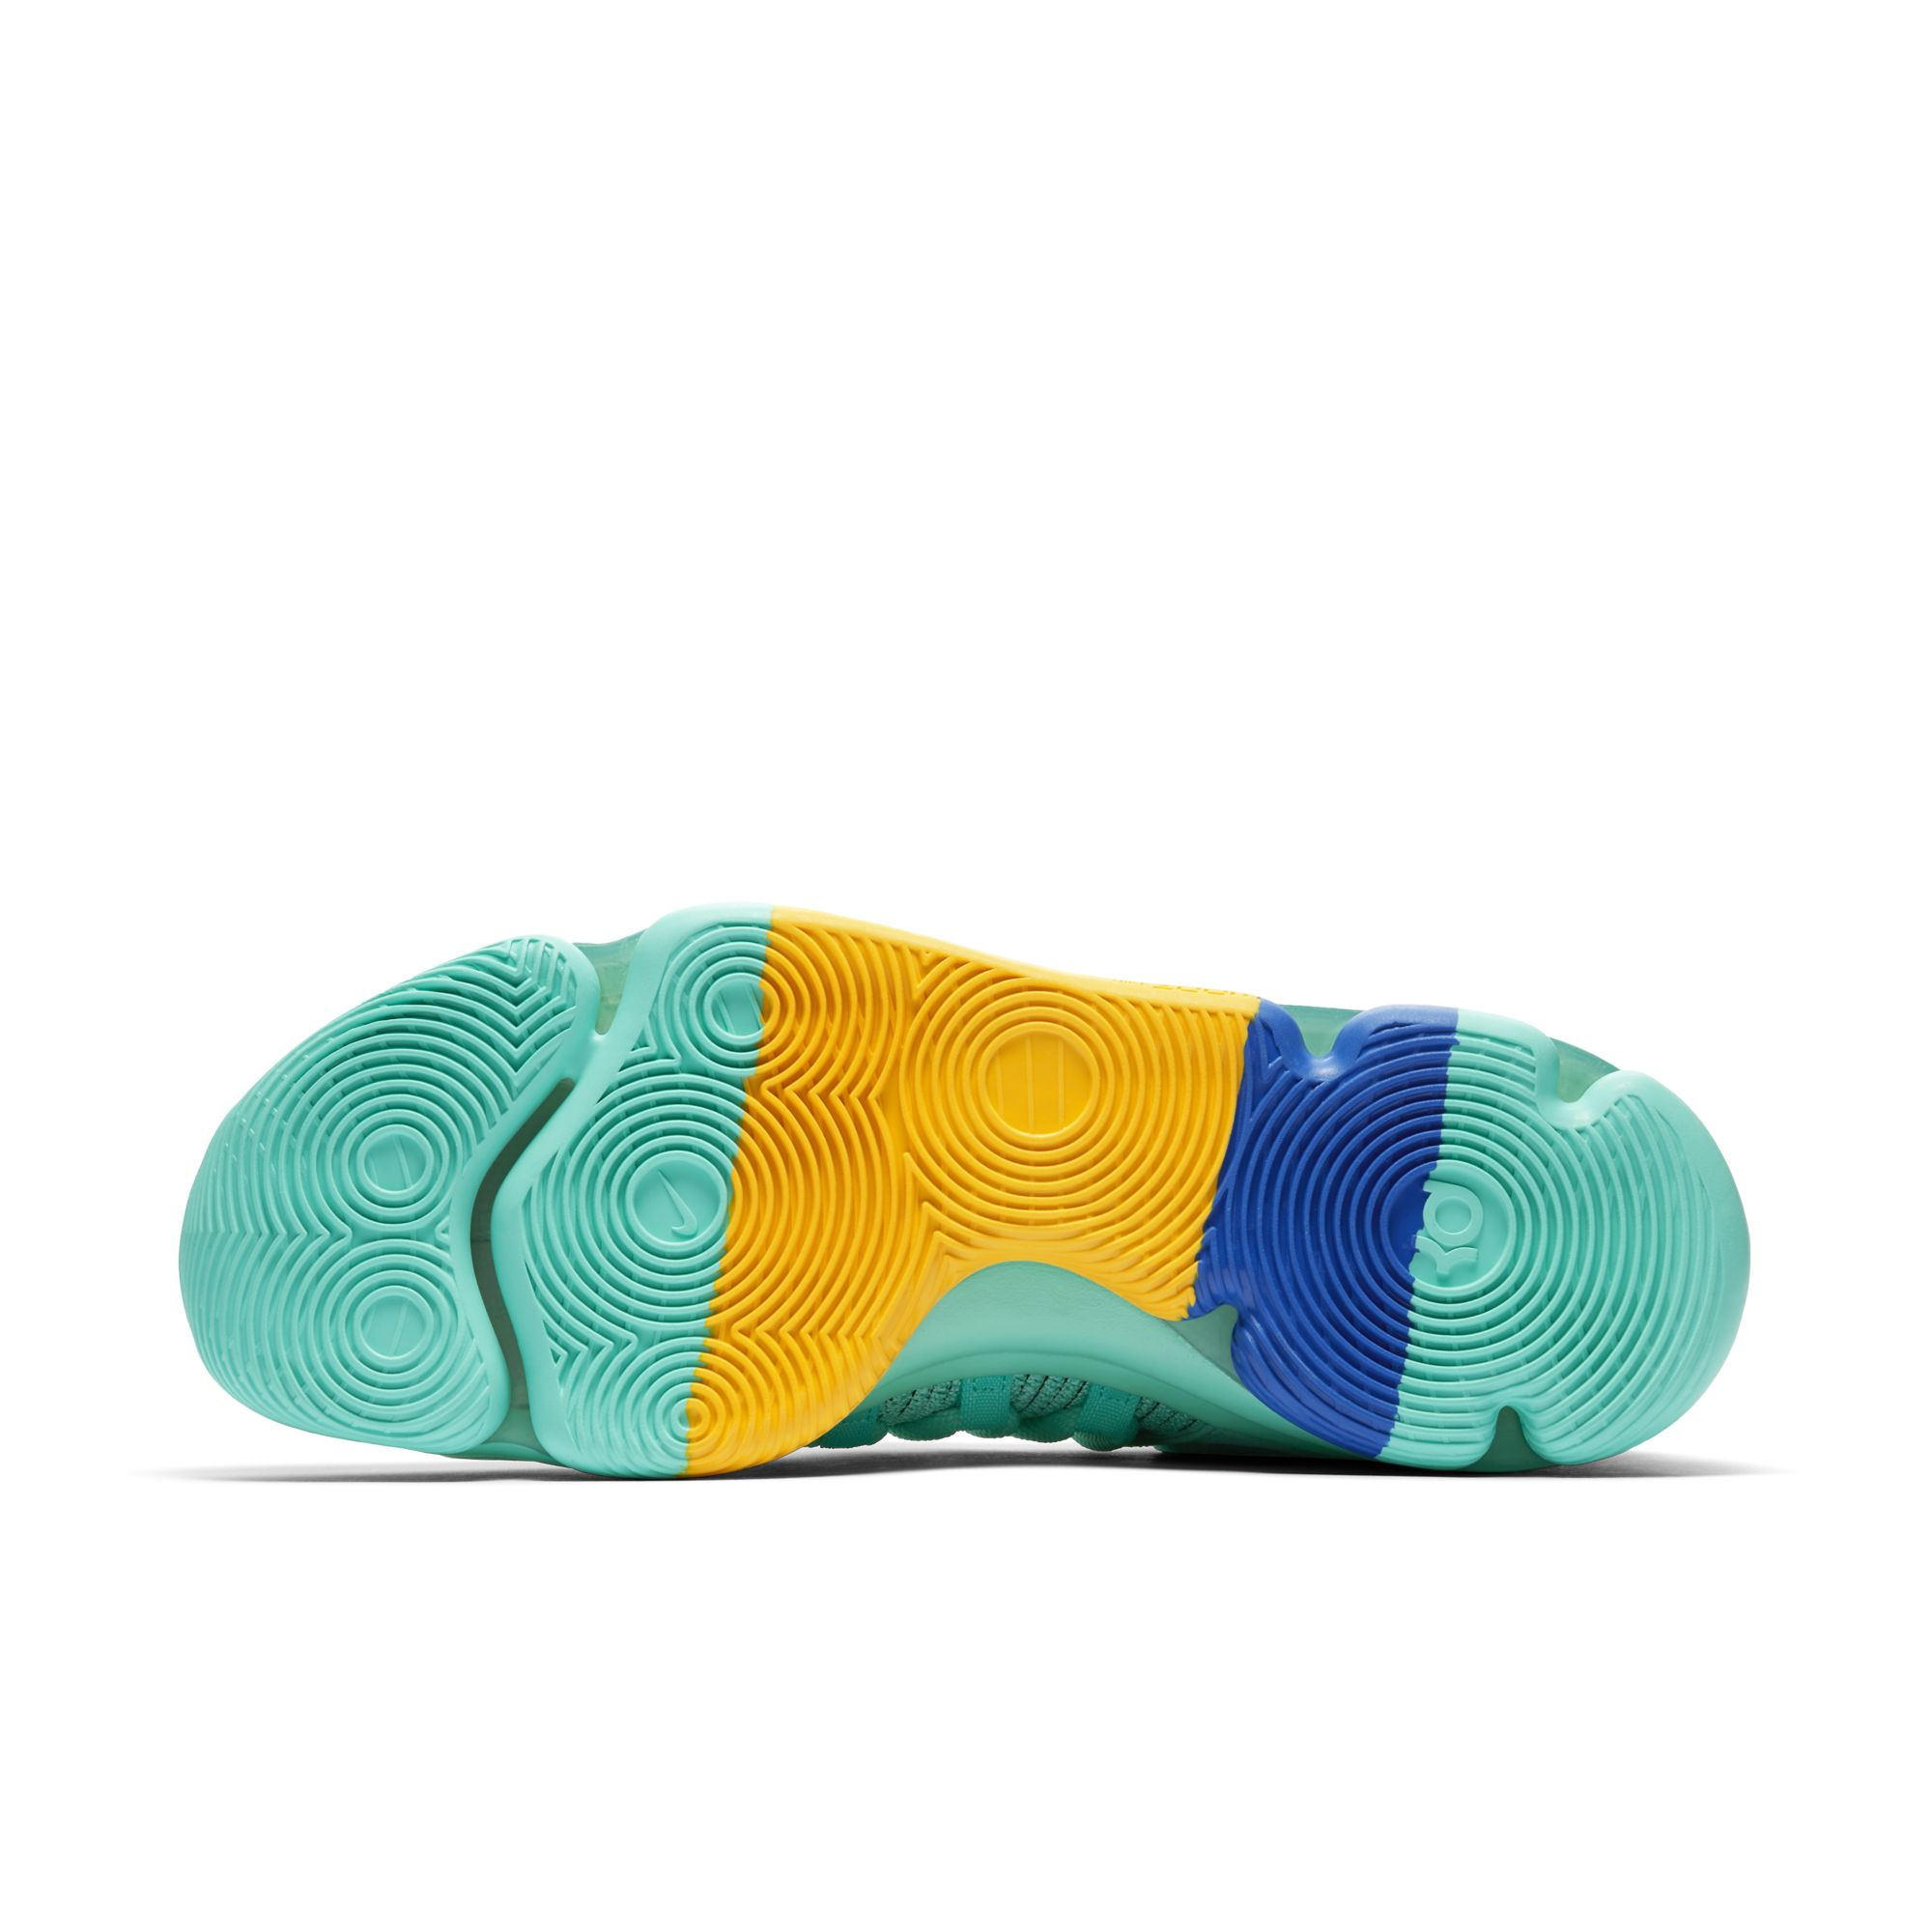 Nike KD 10 City Edition 2 7 - WearTesters 6c854175a